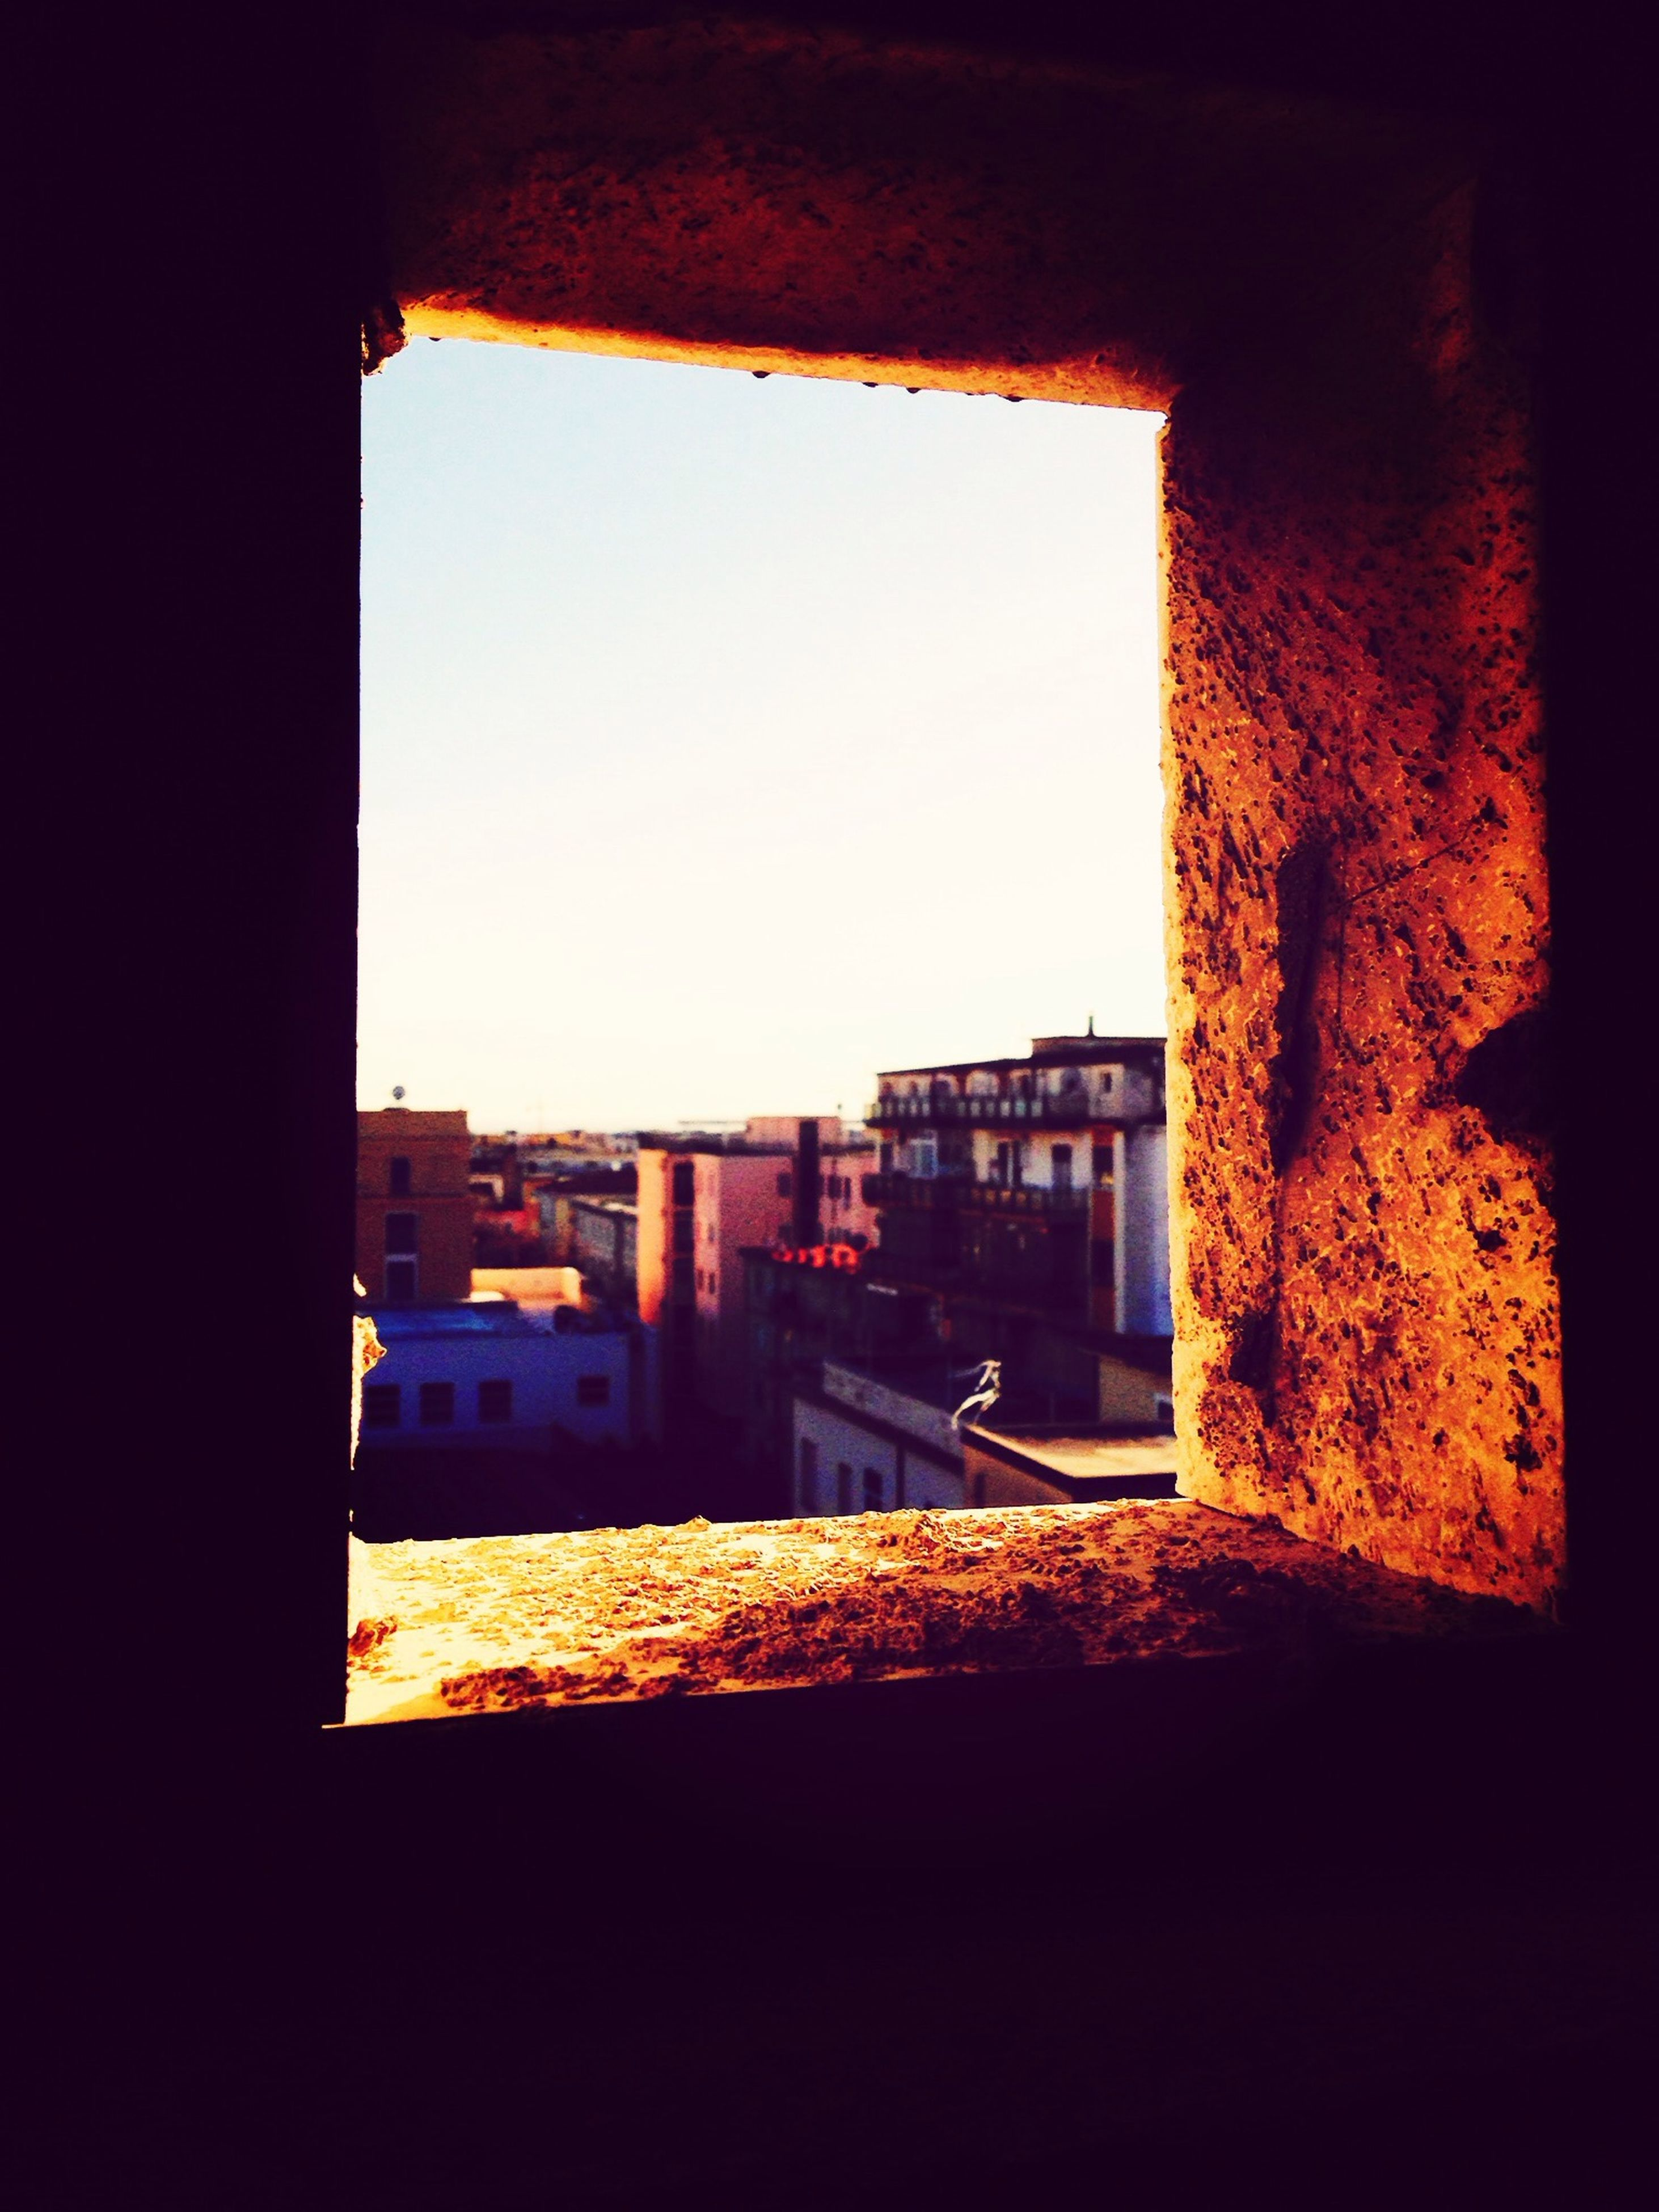 architecture, built structure, indoors, window, building exterior, dark, house, building, low angle view, residential structure, old, sunlight, residential building, no people, history, silhouette, abandoned, clear sky, wall - building feature, day